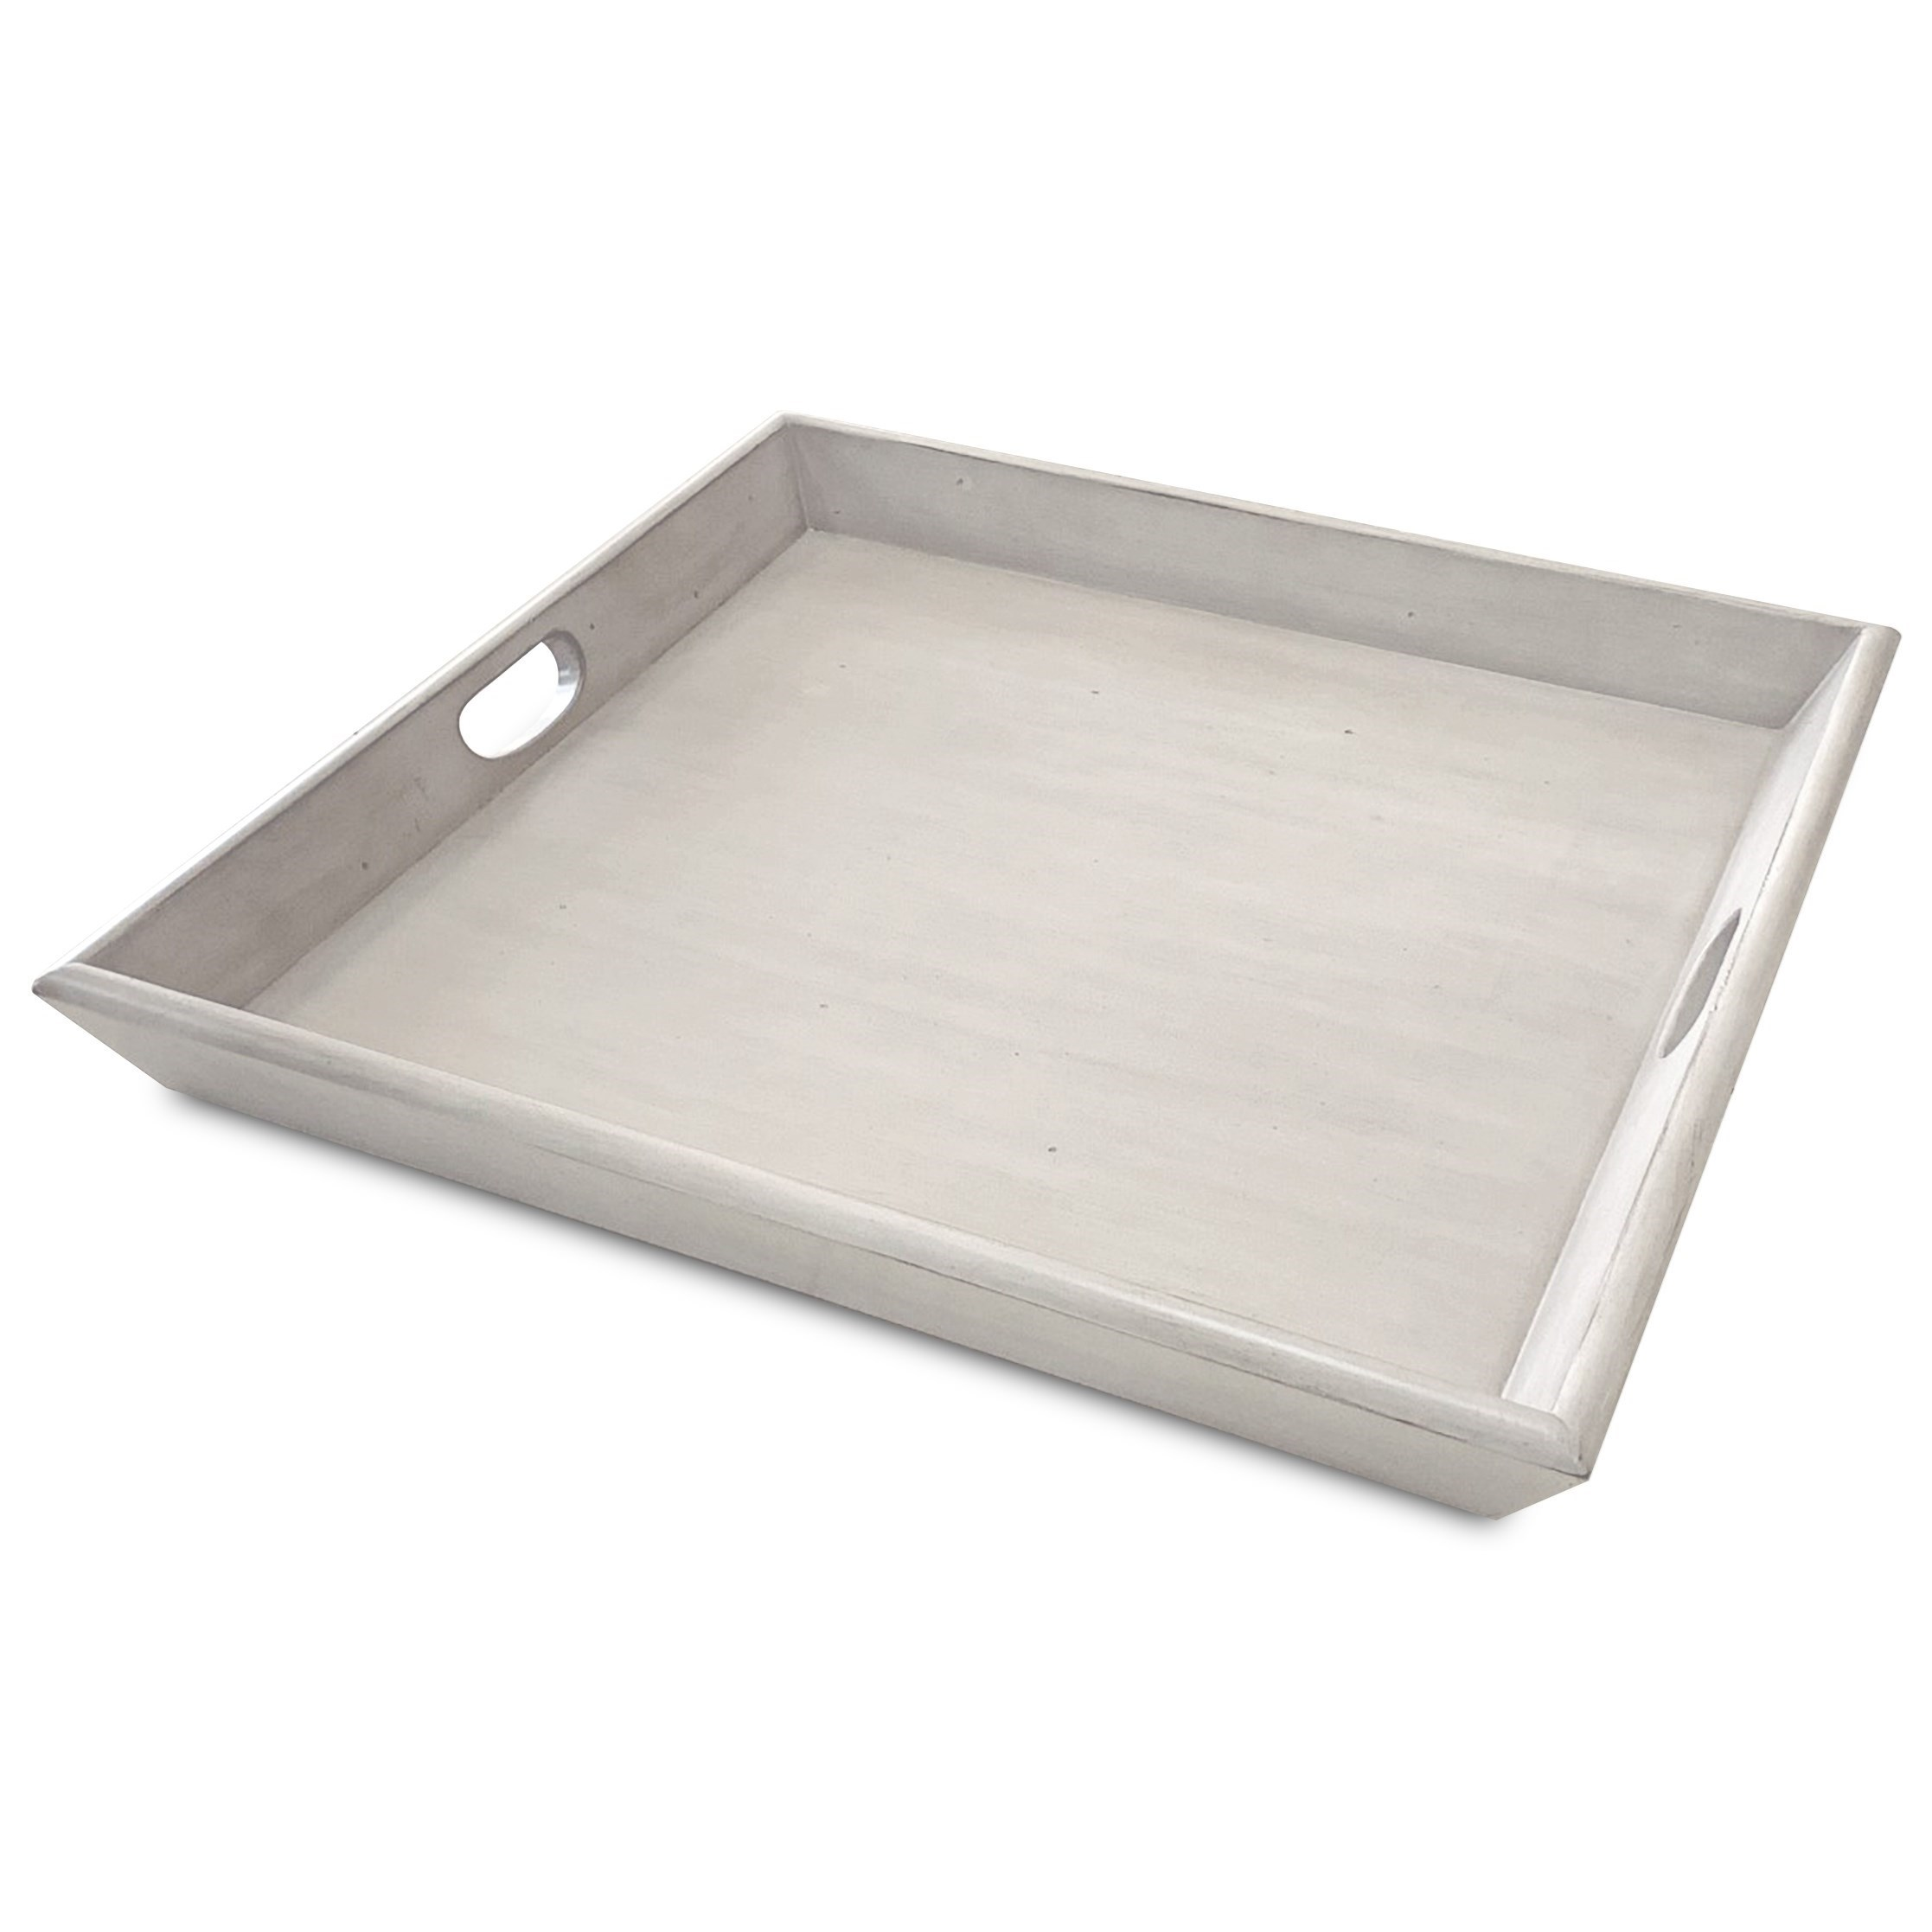 2195 Ottoman Tray by Sunny Designs at Wayside Furniture